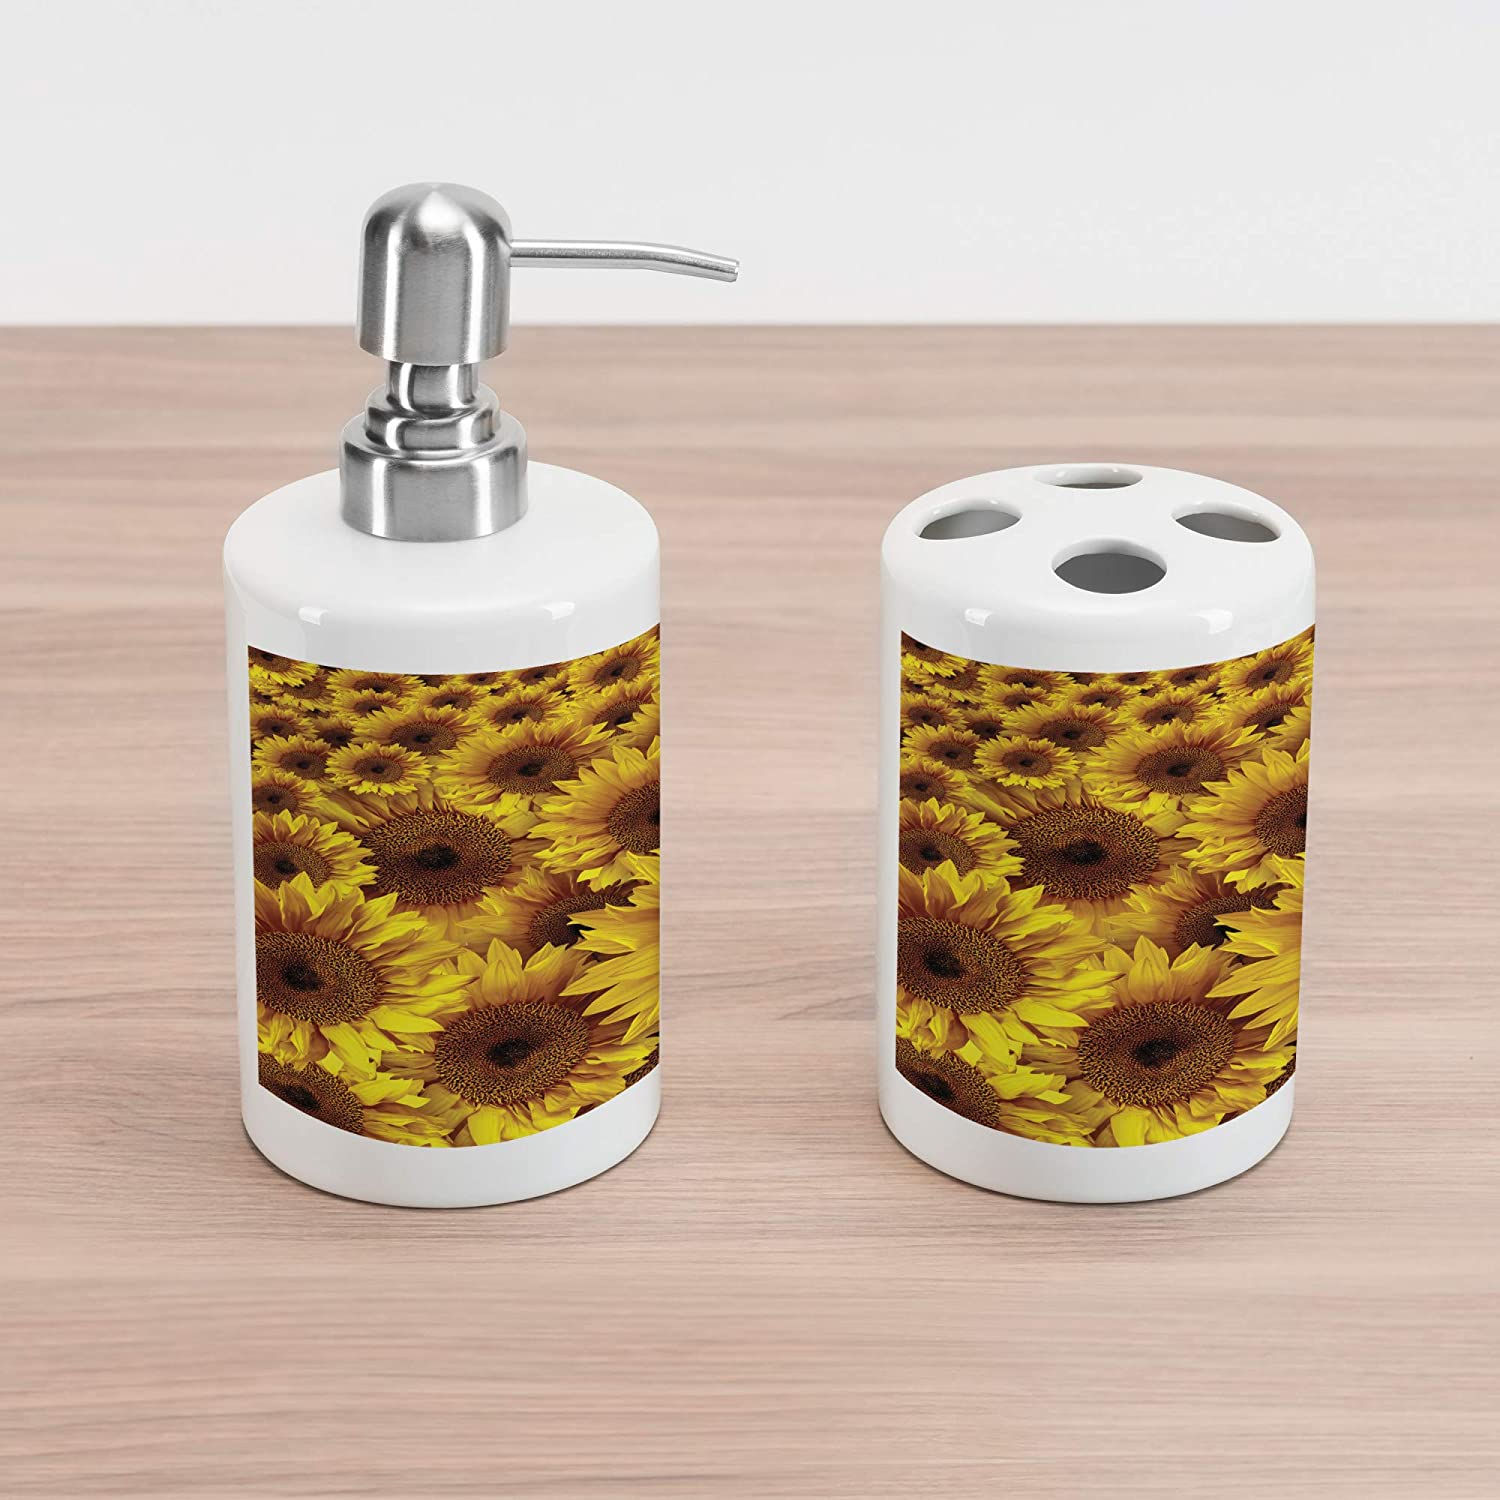 Sunflower Bouquet Flourishing Botany Morning Vibrant Color Picture Print Mustard Yellow Lunarable Sunflower Soap Dispenser and Toothbrush Holder Set 4.5 X 2.7 Ceramic Bathroom Accessories